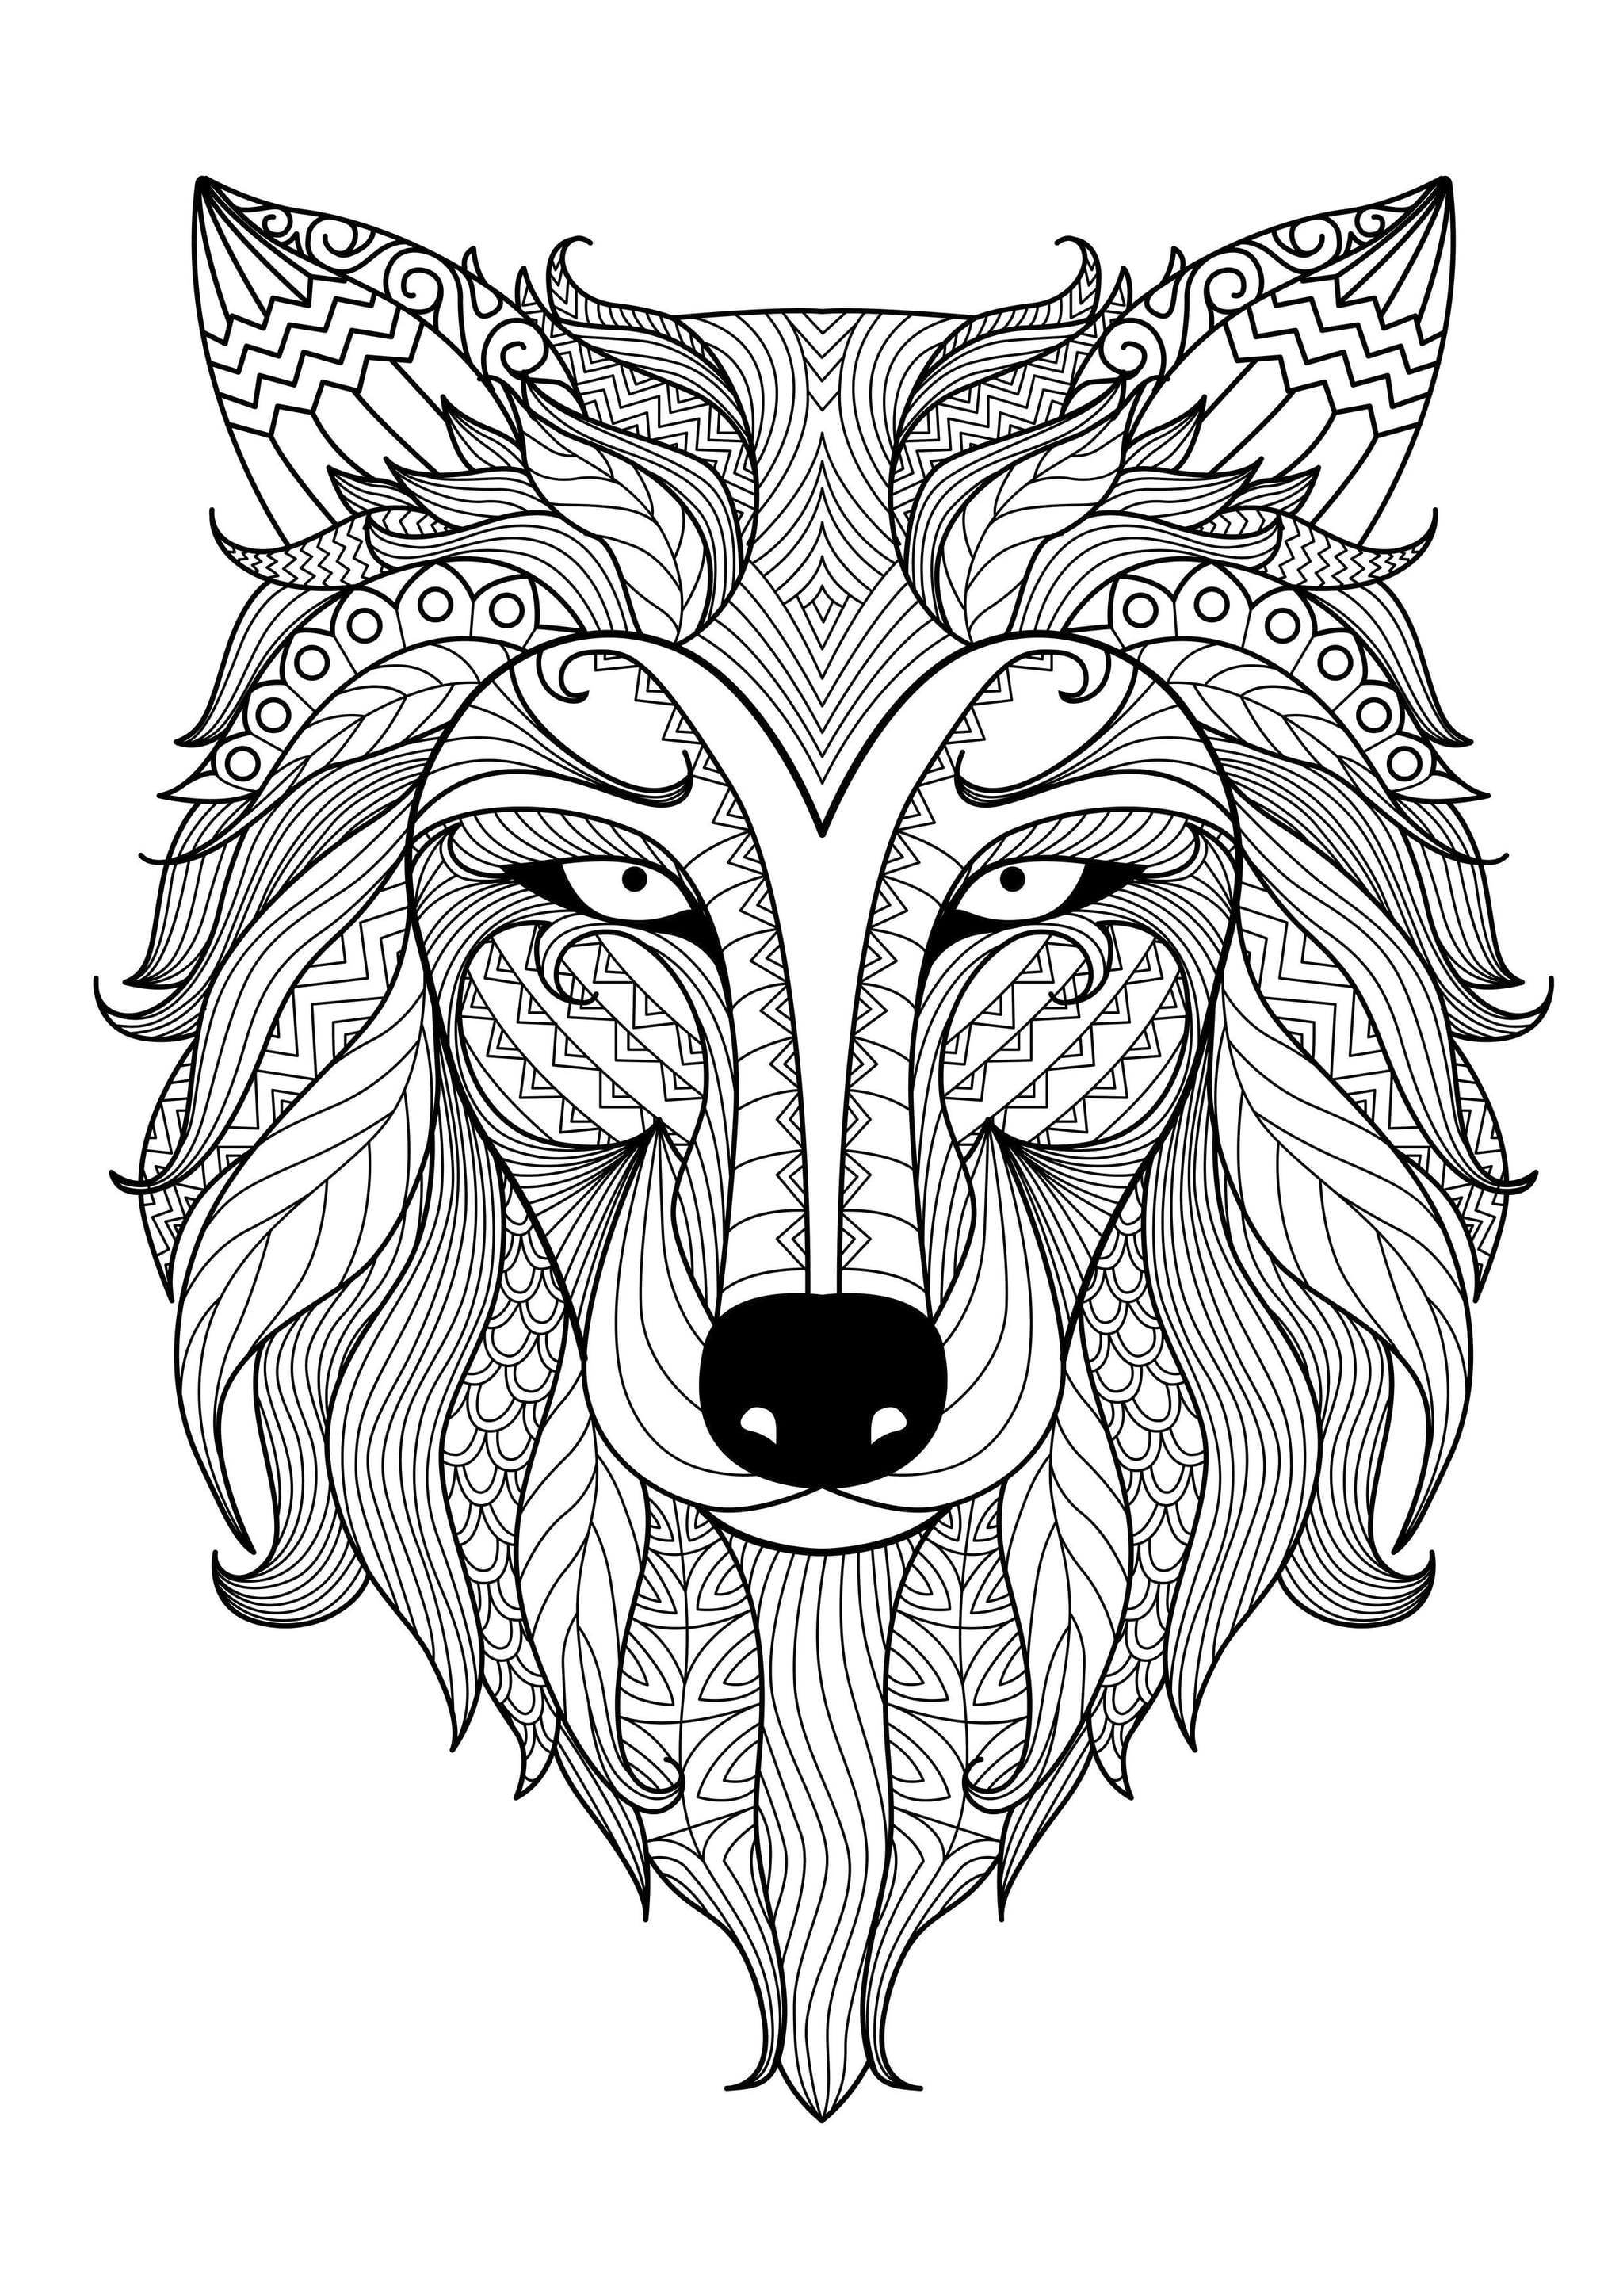 - Get The Coloring Page: Wolf 50 Printable Adult Coloring Pages